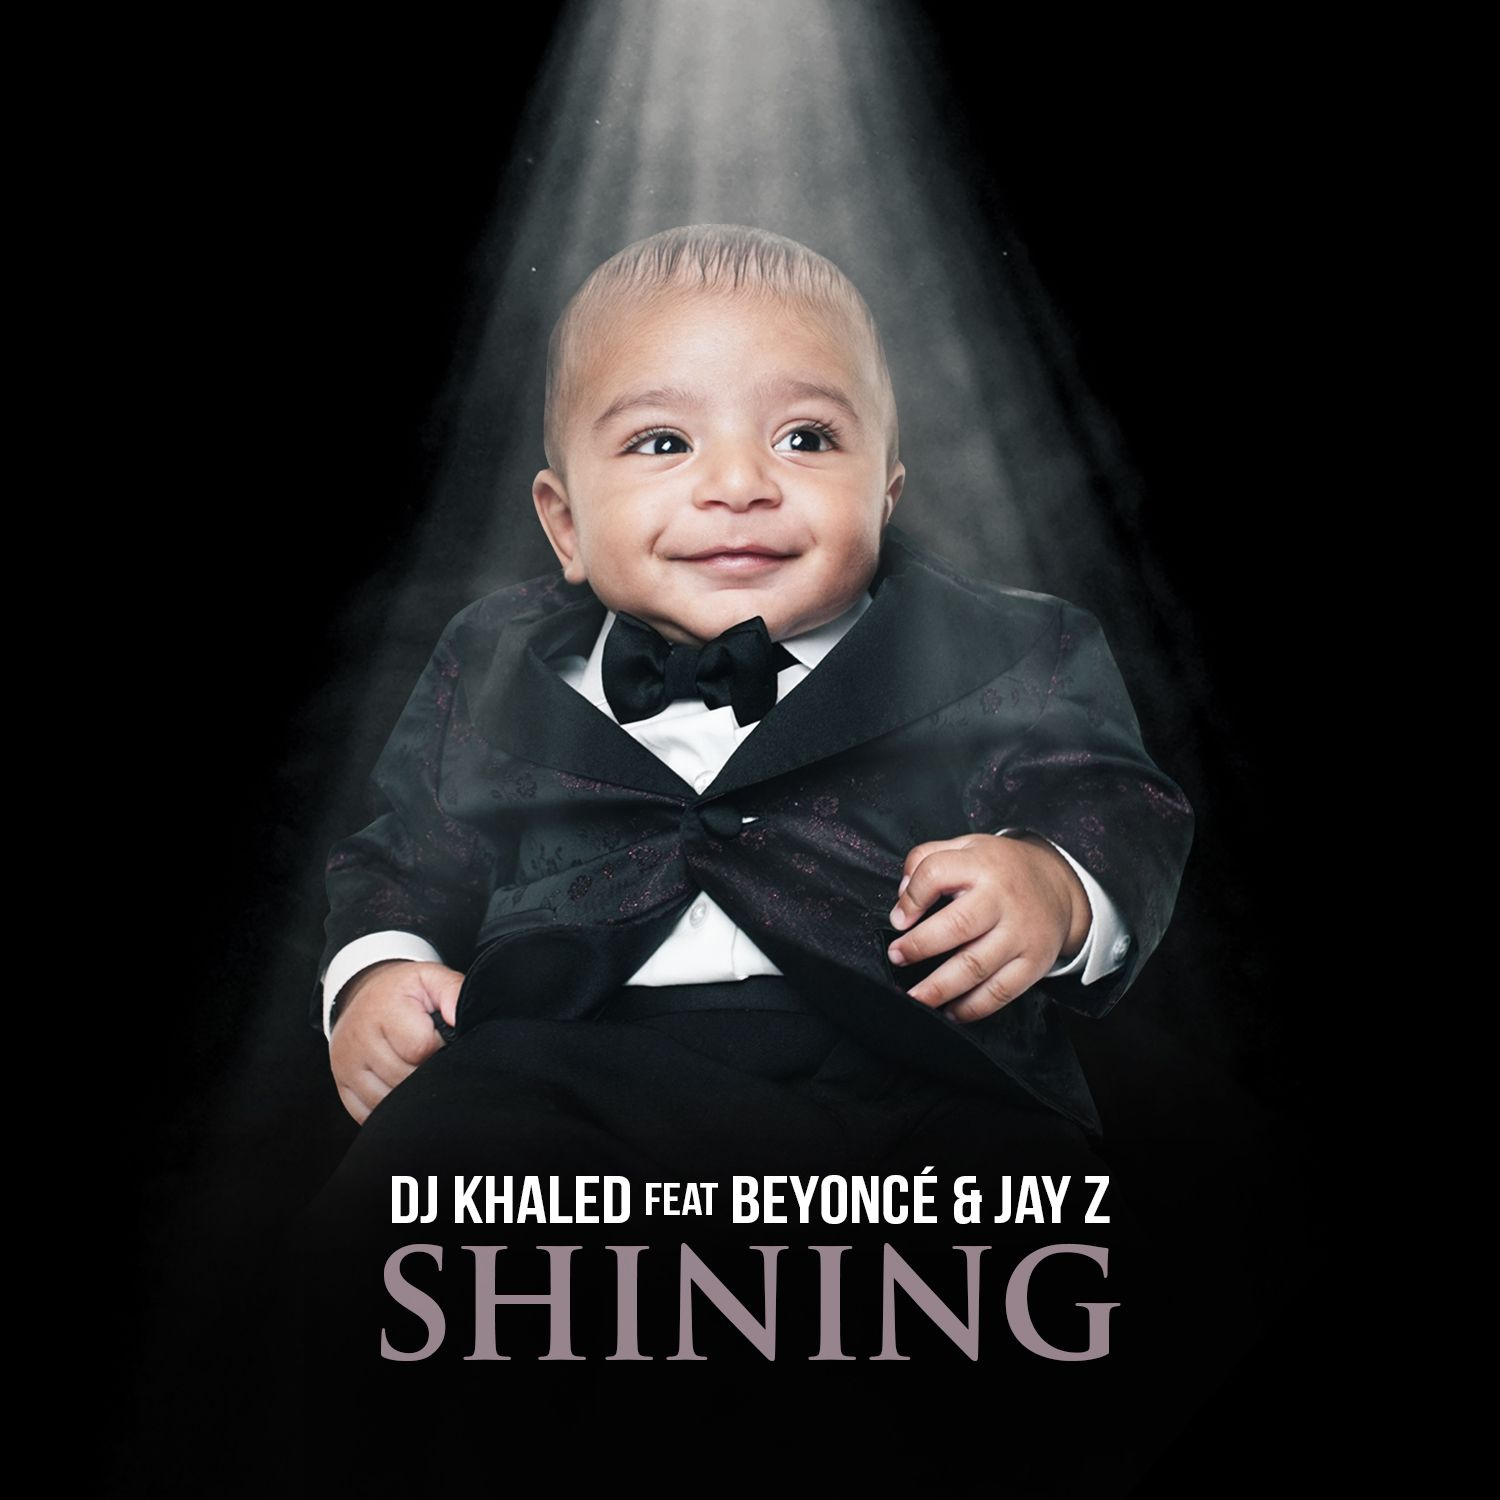 Image result for dj khaled shining